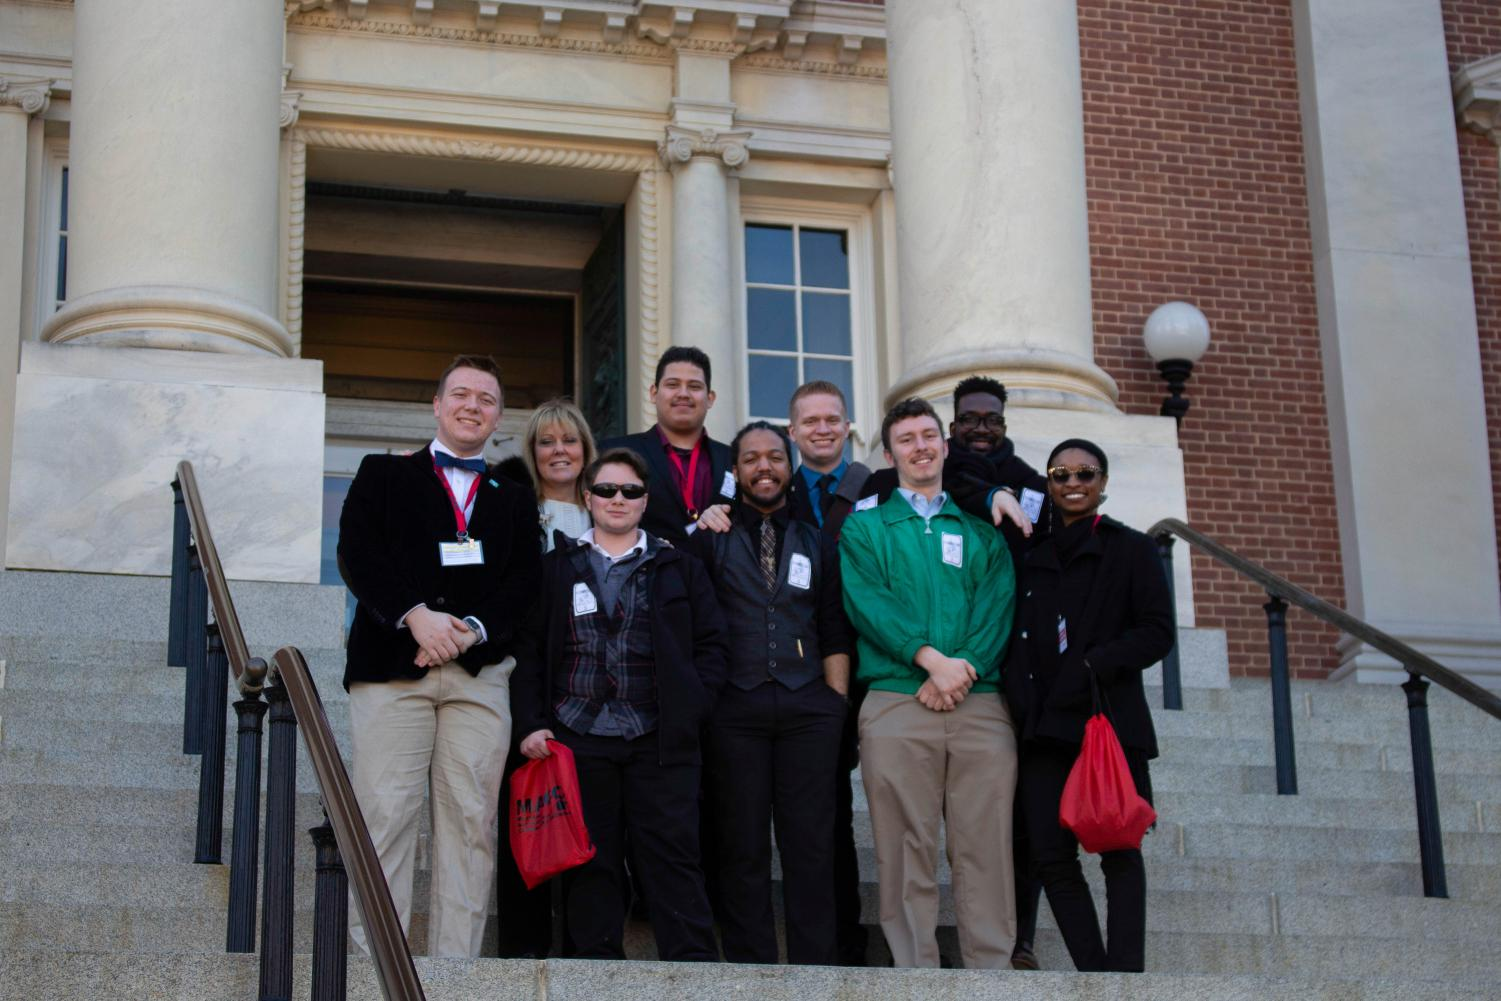 AACC President Dawn Lindsay poses with Director of Student Engagement Leon Thom-as and seven students at this year's Student Advocacy Day. At the event, students spoke to Maryland legislators.